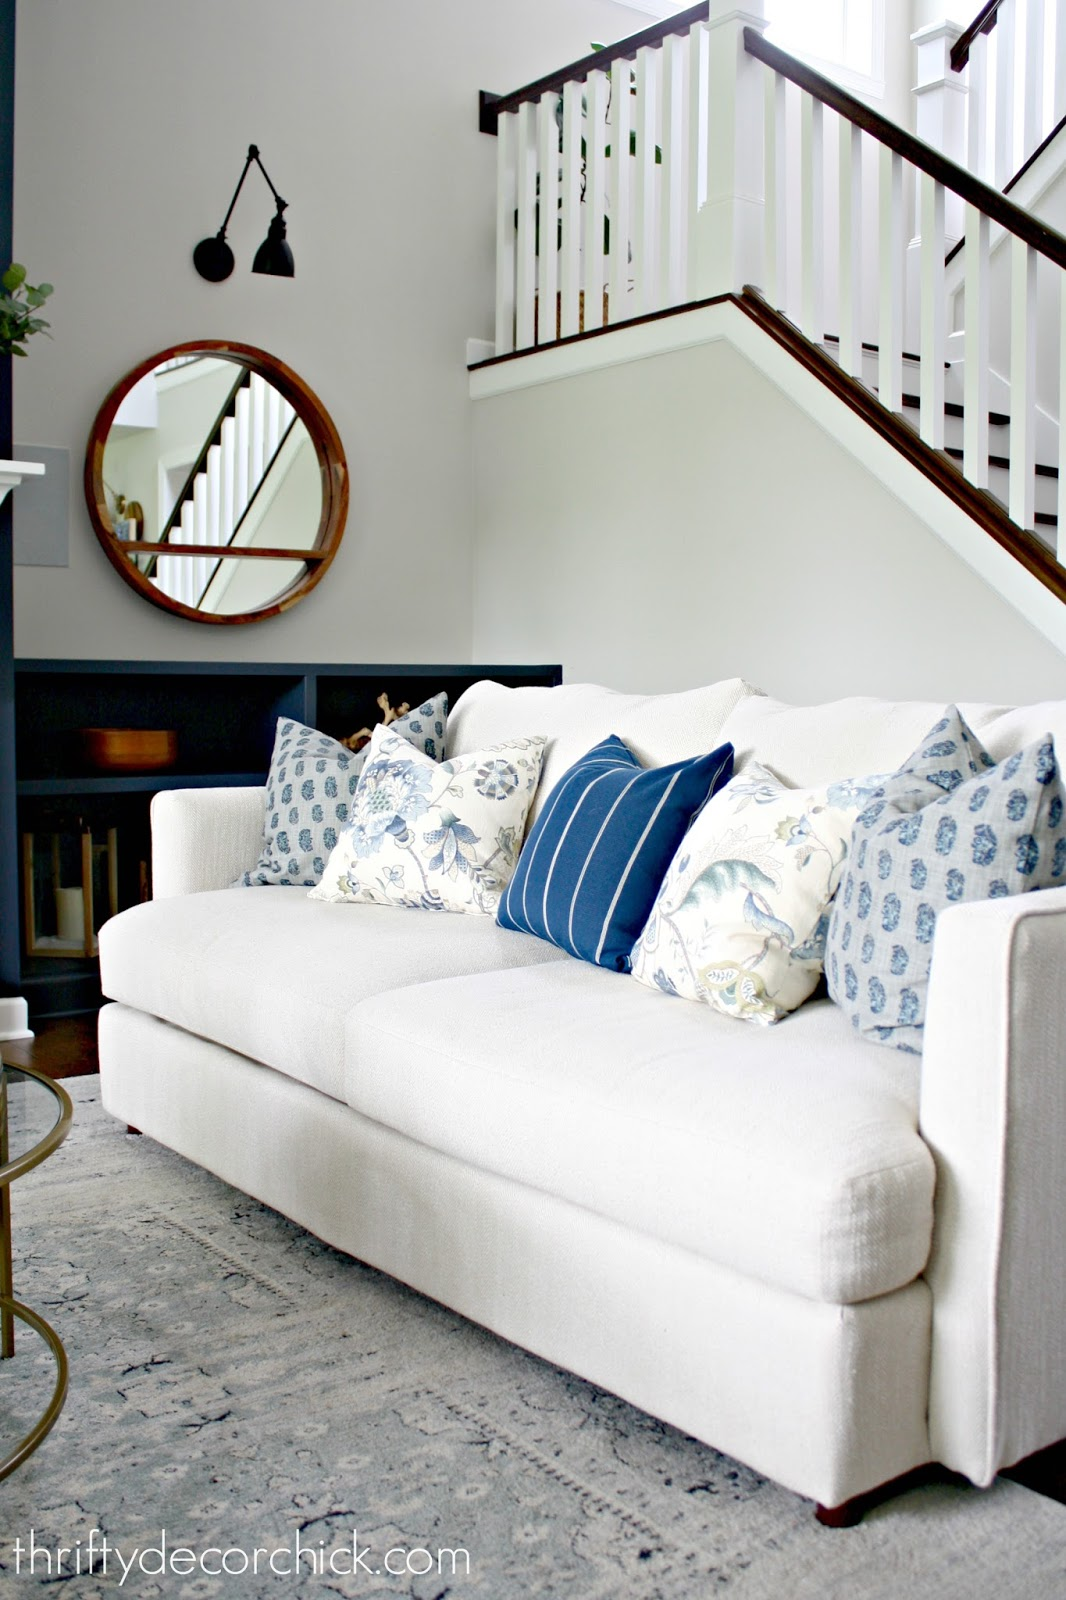 How to mix and match pillow fabrics